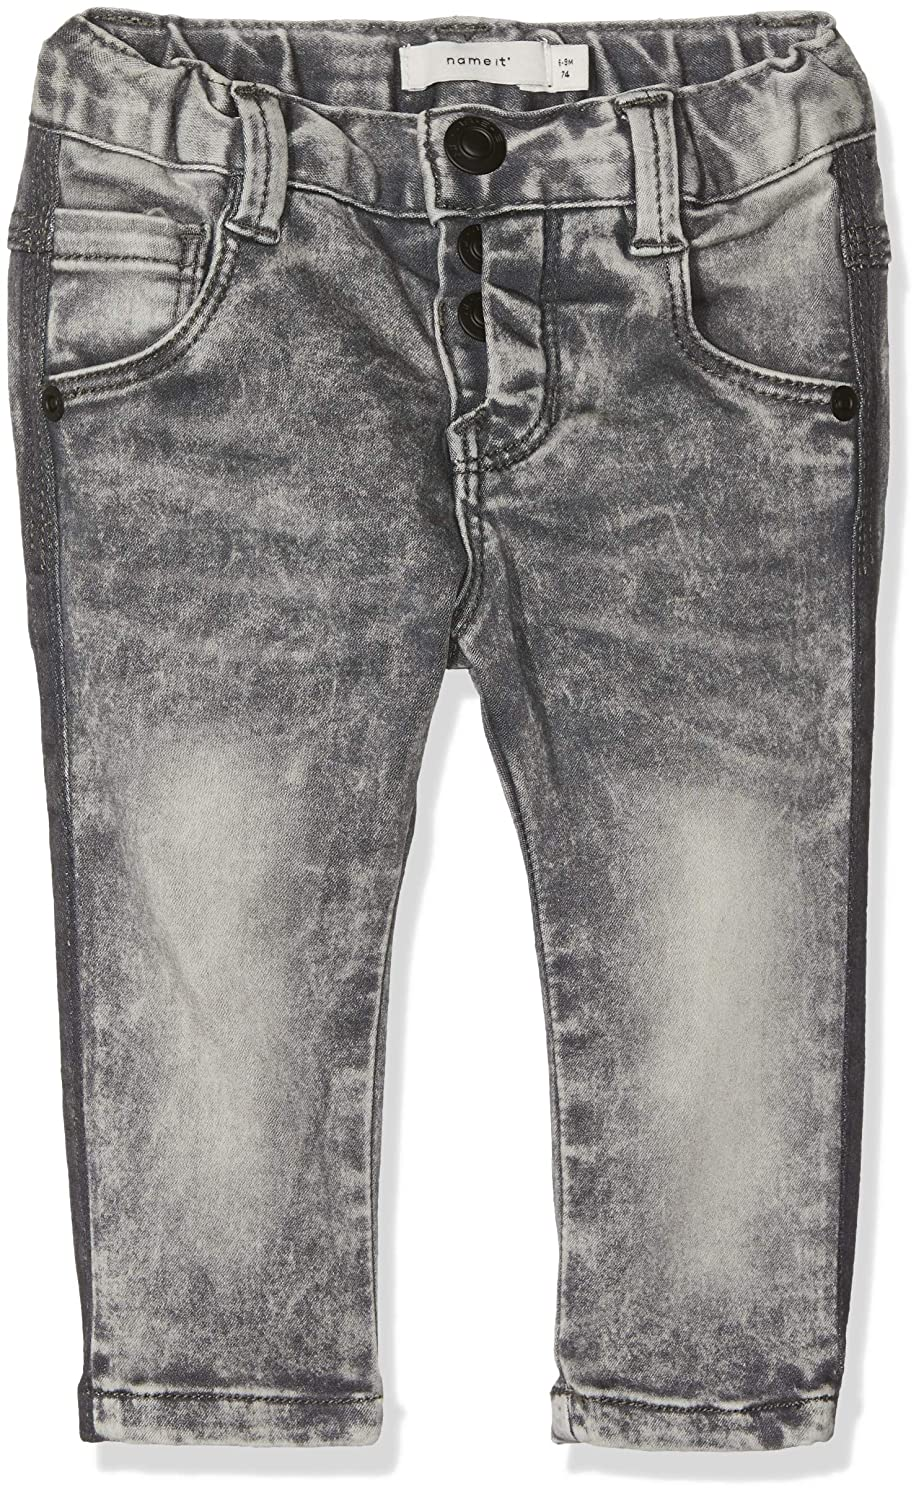 NAME IT Baby-Jungen Jeans 13155250